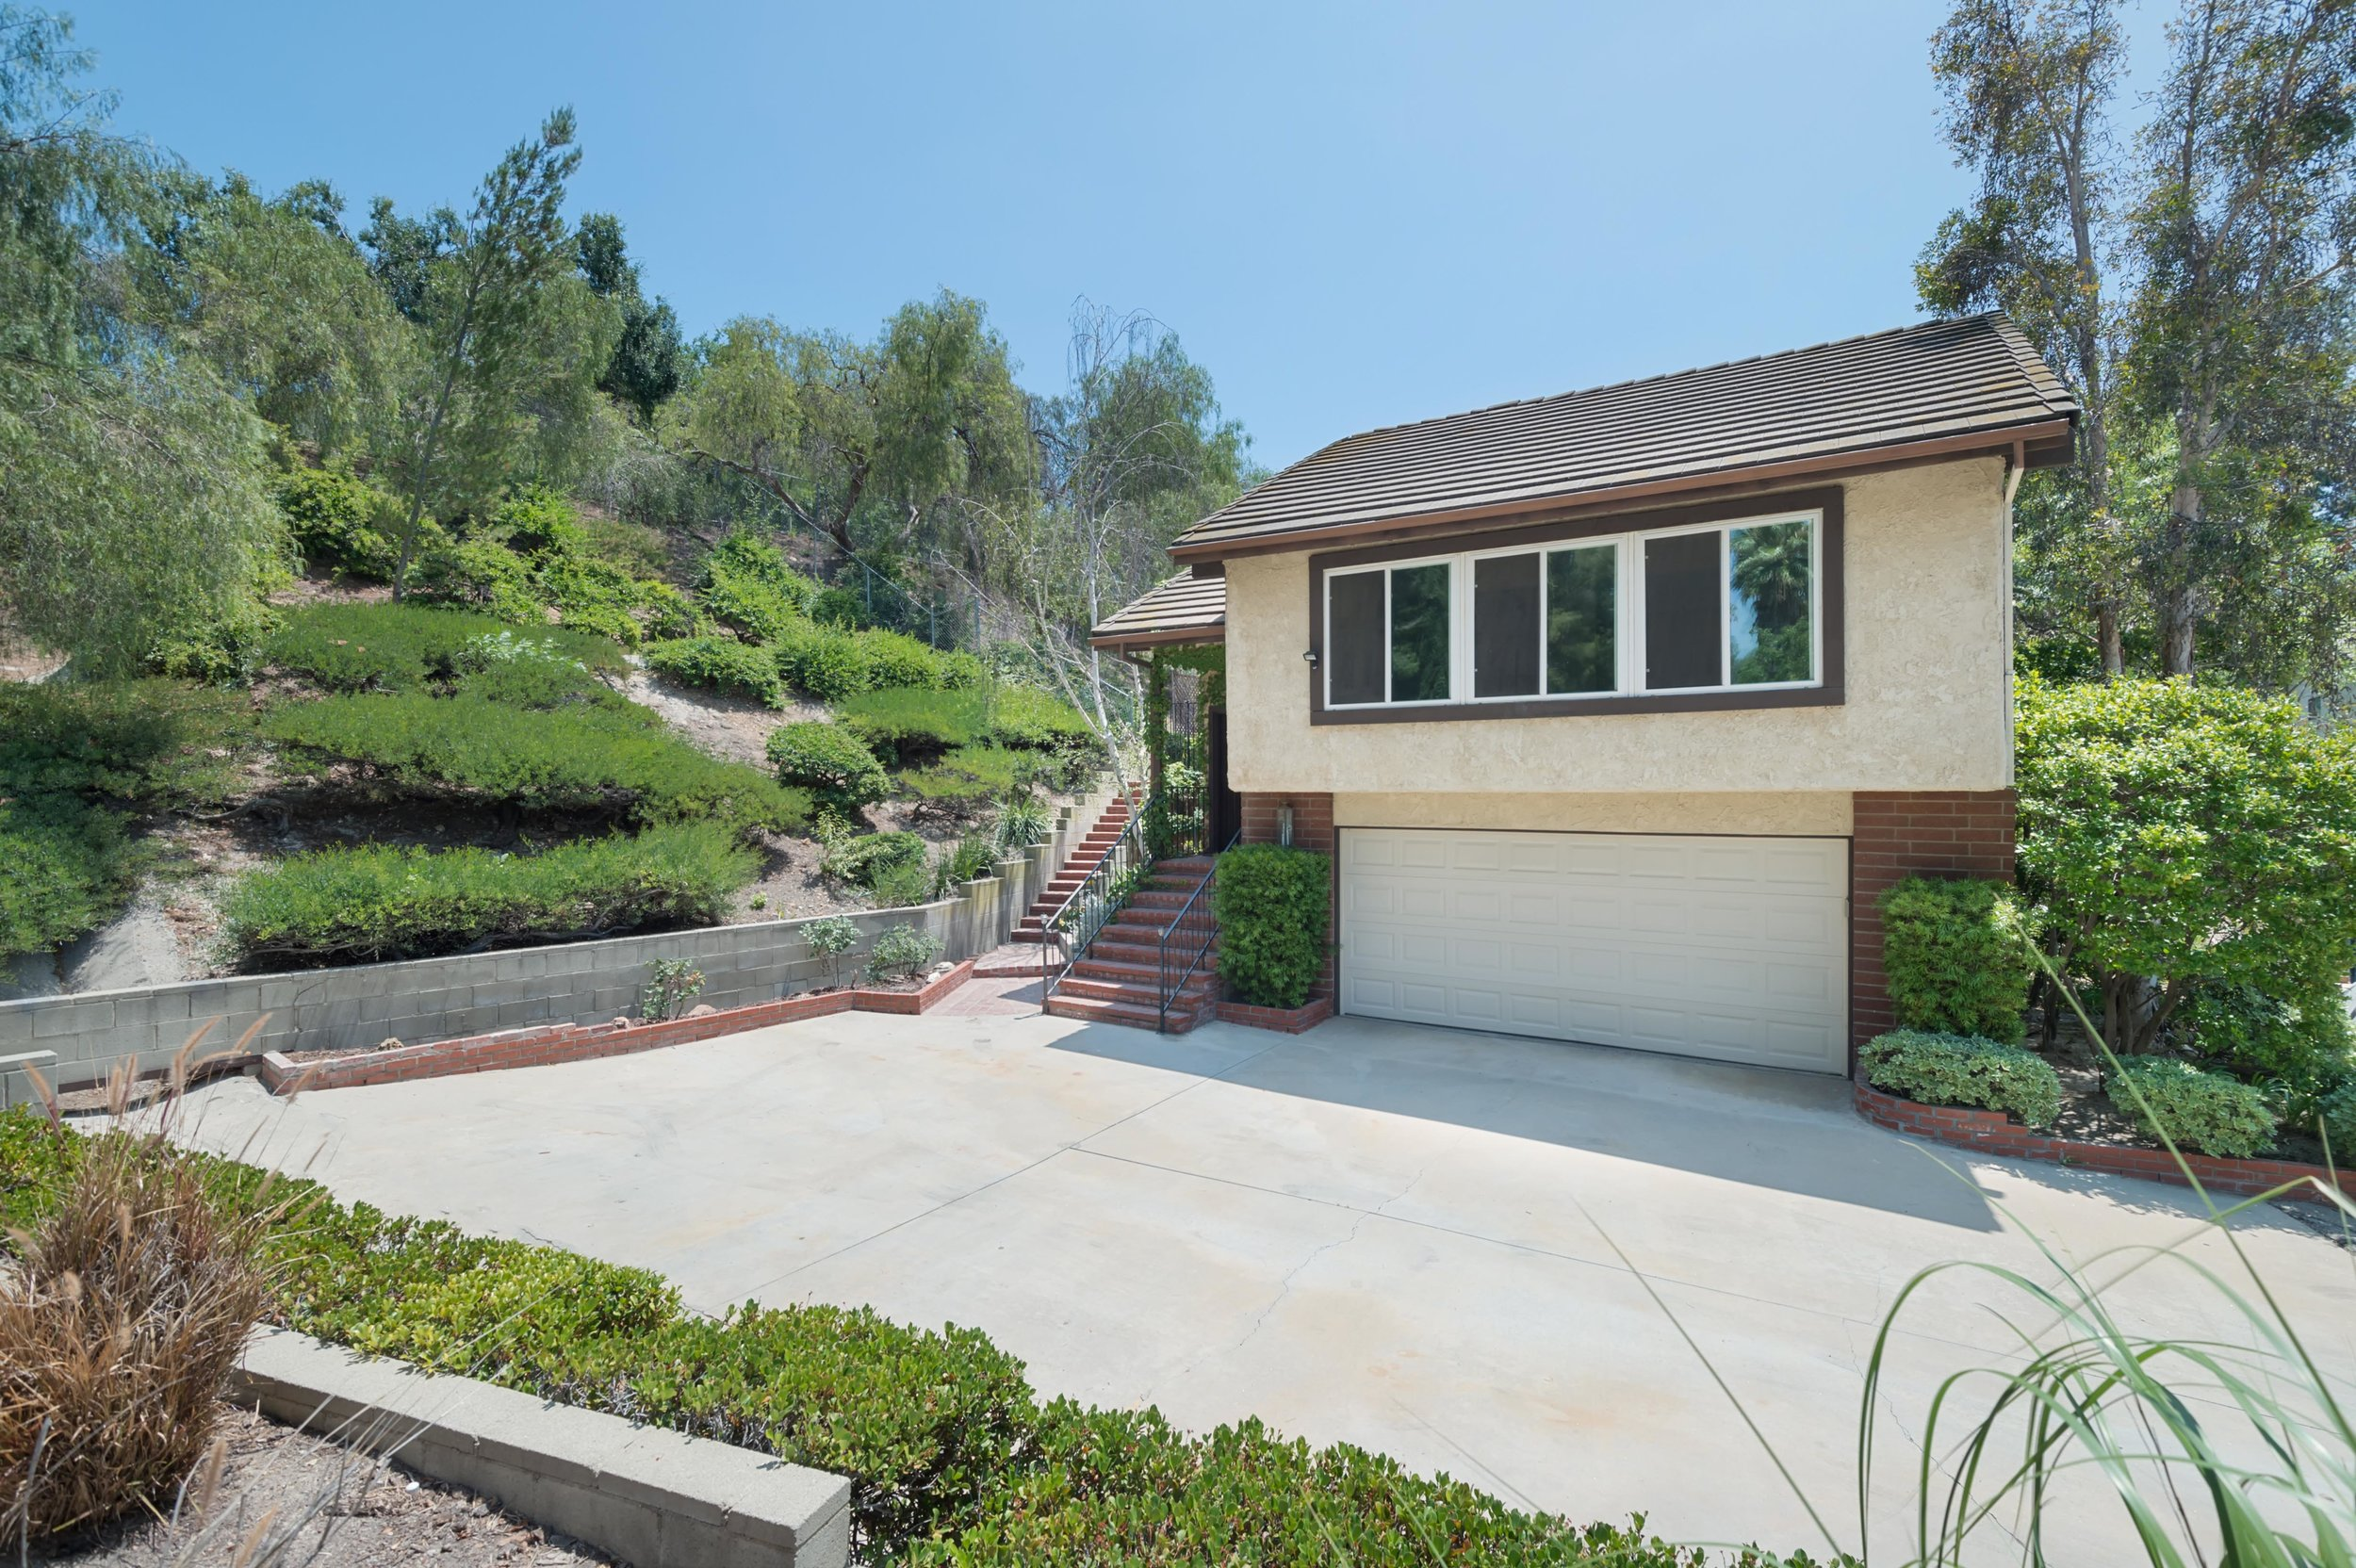 001 front 8832 Moorcroft Avenue West Hills For Sale Lease The Malibu Life Team Luxury Real Estate.jpg